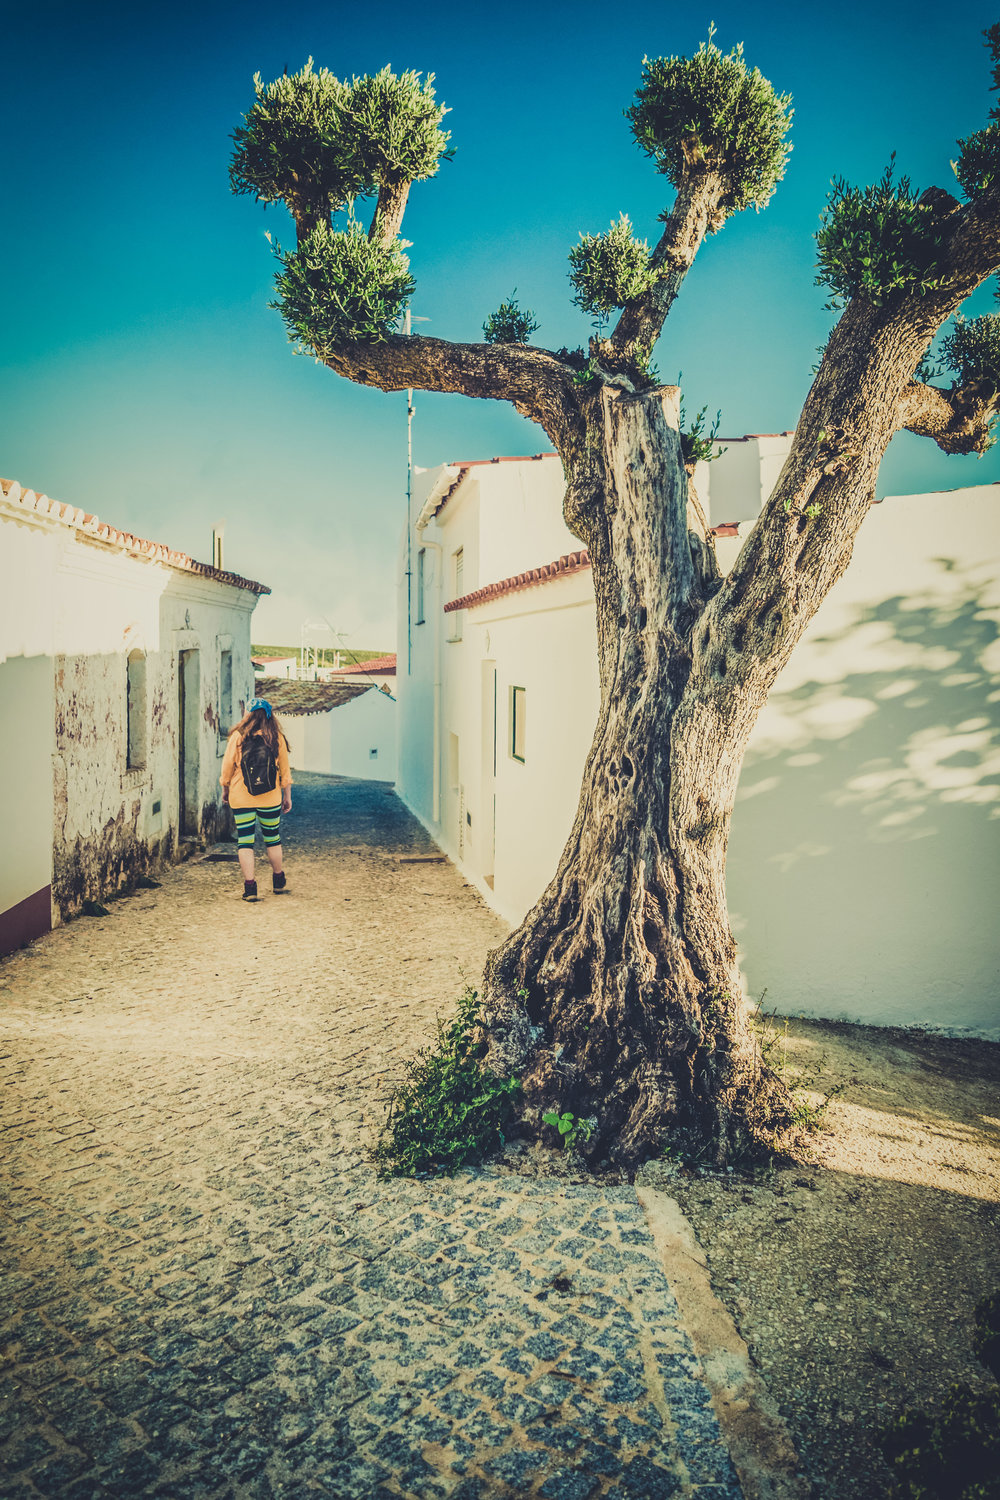 Hiking. algarve. portugal. talbe mountain. walking in the mountains. Rocha da Pena.. tree, view. green. lowepro.. alleyway with tree.jpg